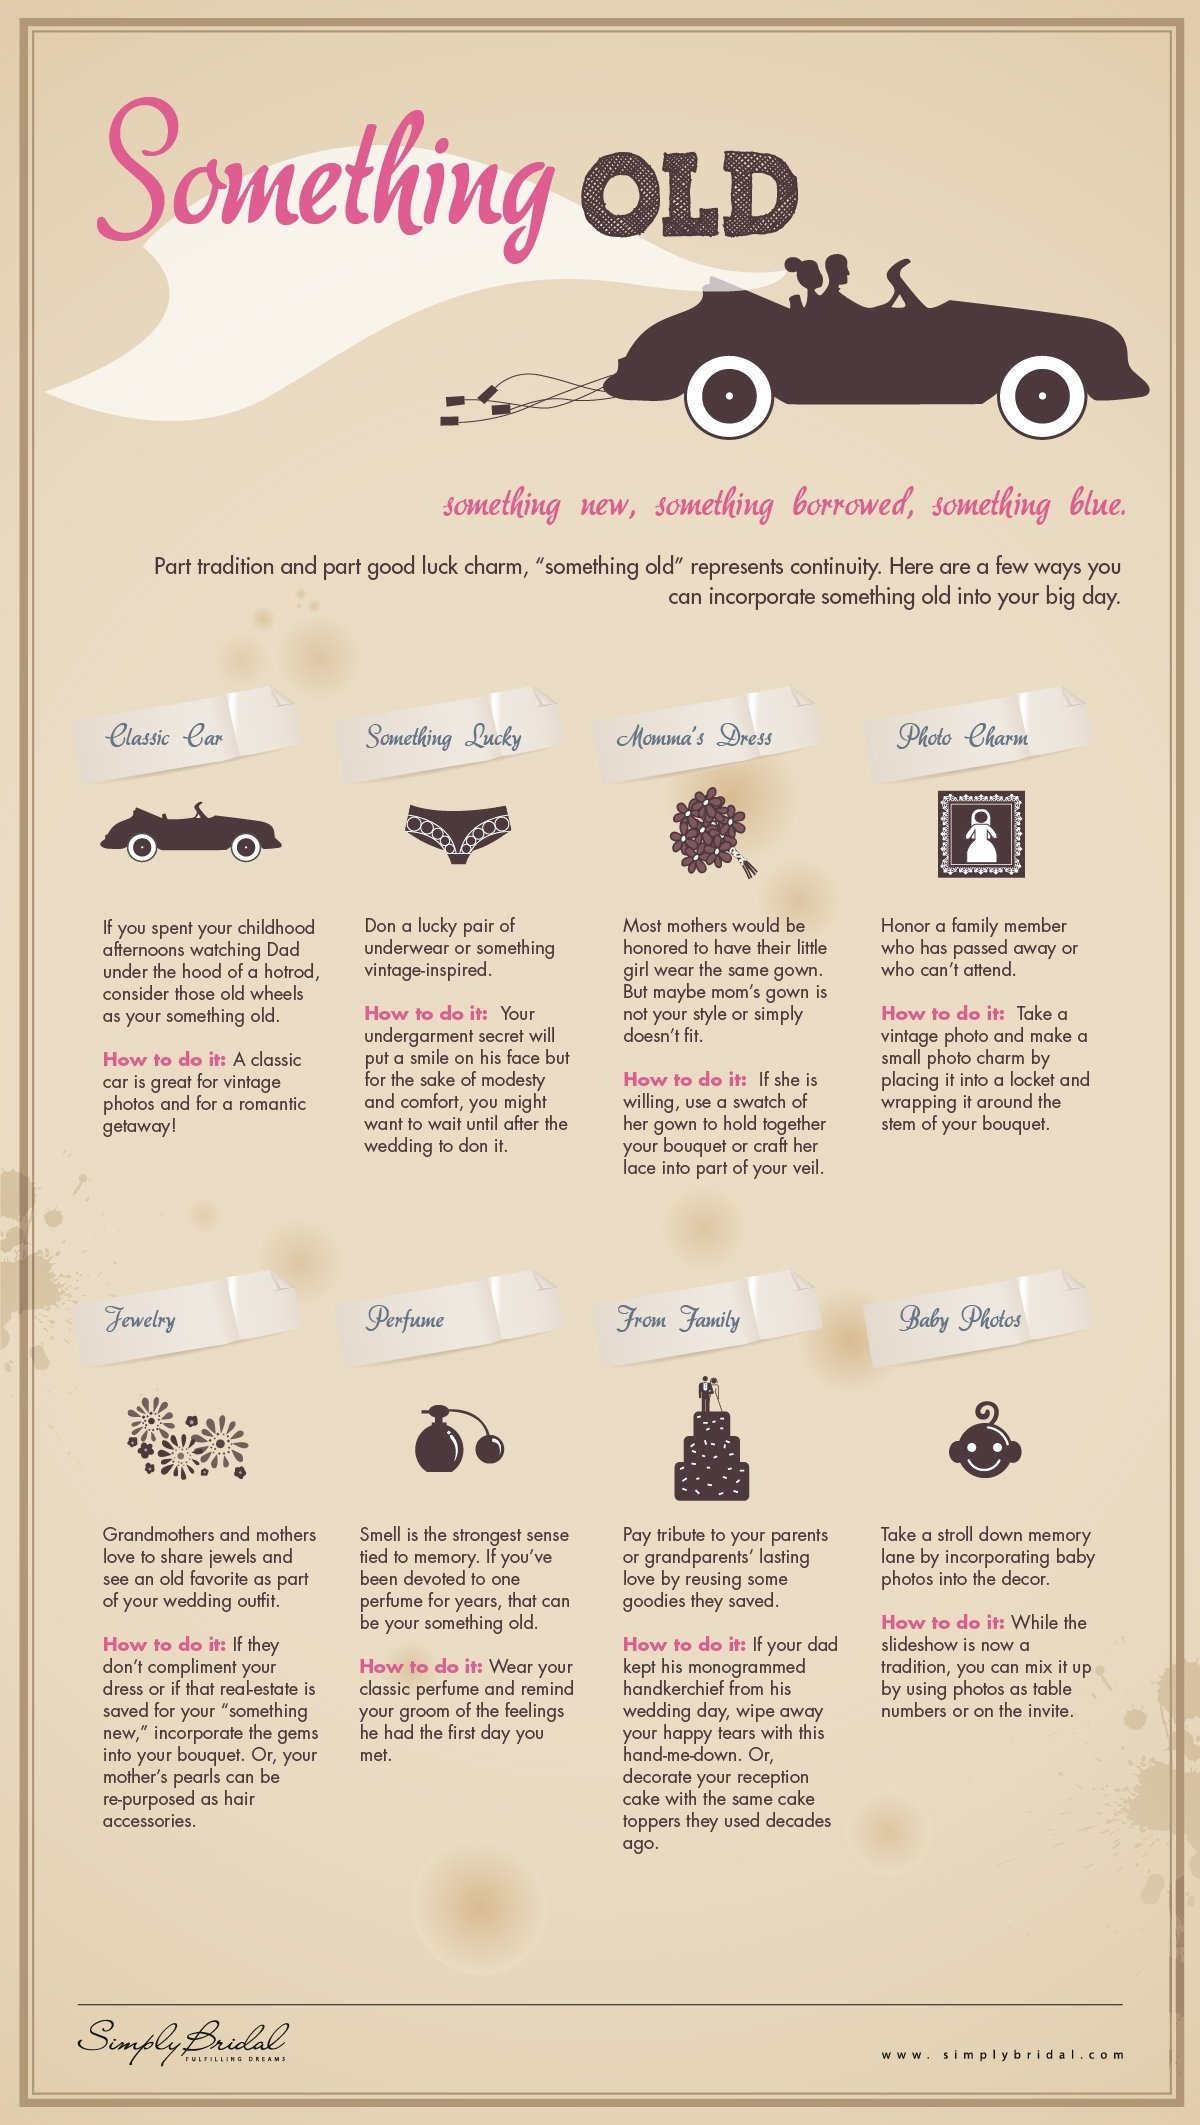 10 Fabulous Something Borrowed Ideas For Bride ideas for your something old at your wedding 2020